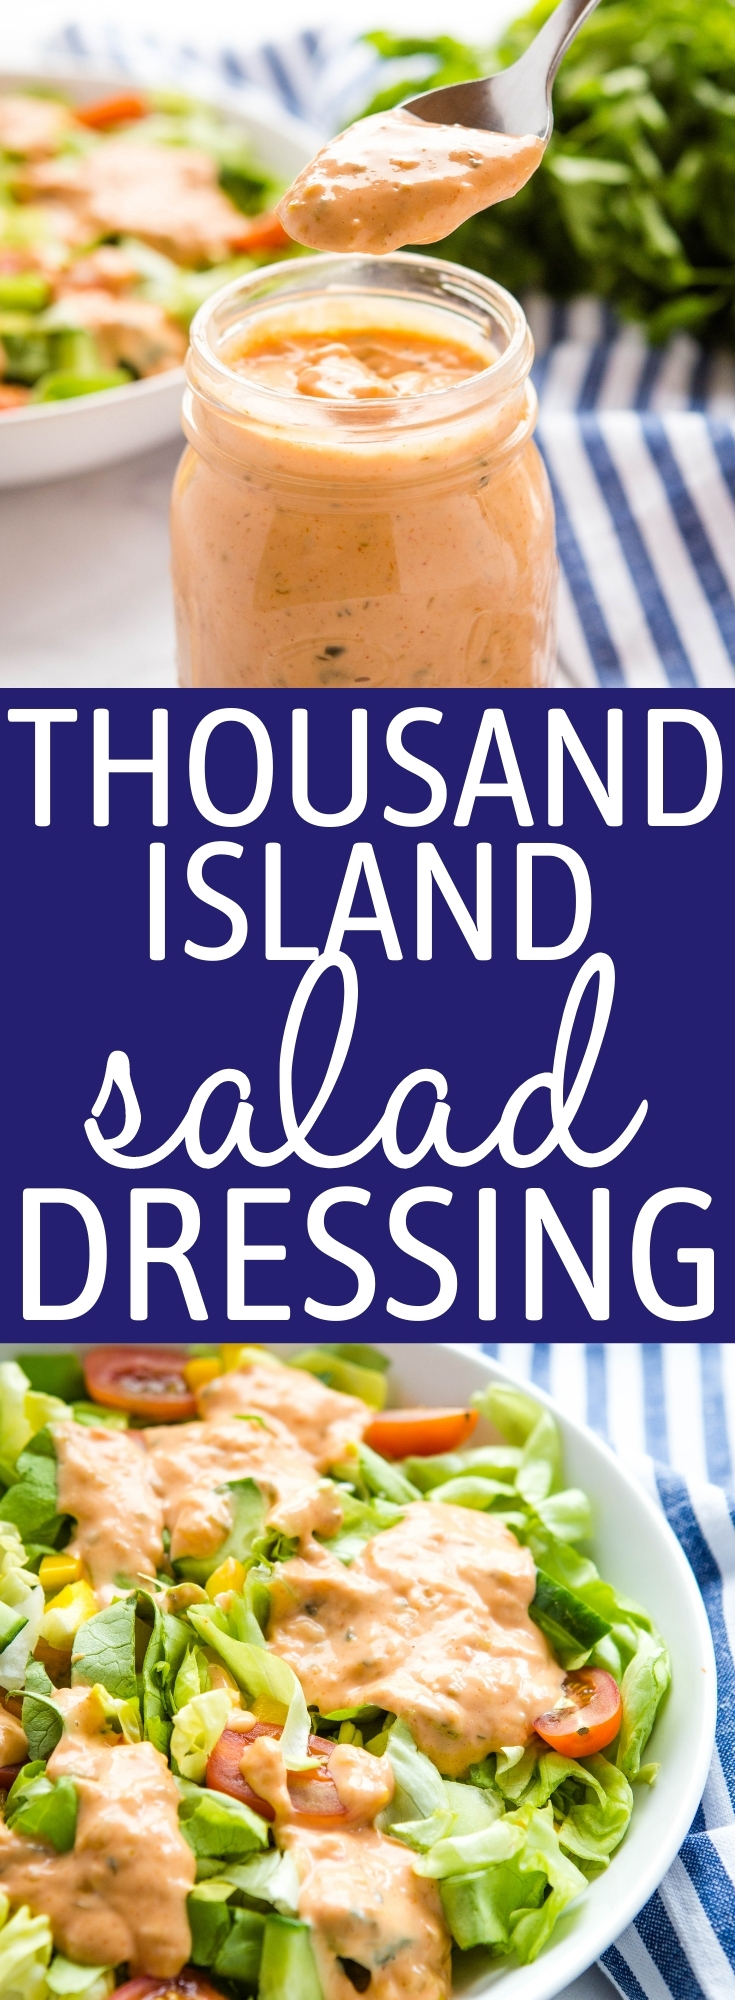 This Thousand Island Dressing is ultra tangy, sweet and creamy and it's so easy to make with simple pantry ingredients! It's the perfect secret sauce for all your favourite salads or sandwiches! Recipe from thebusybaker.ca! #thousandisland #saladdressing #salad #sauce #bigmacsauce #reubensandwichsauce #secretsauce #frysauce via @busybakerblog